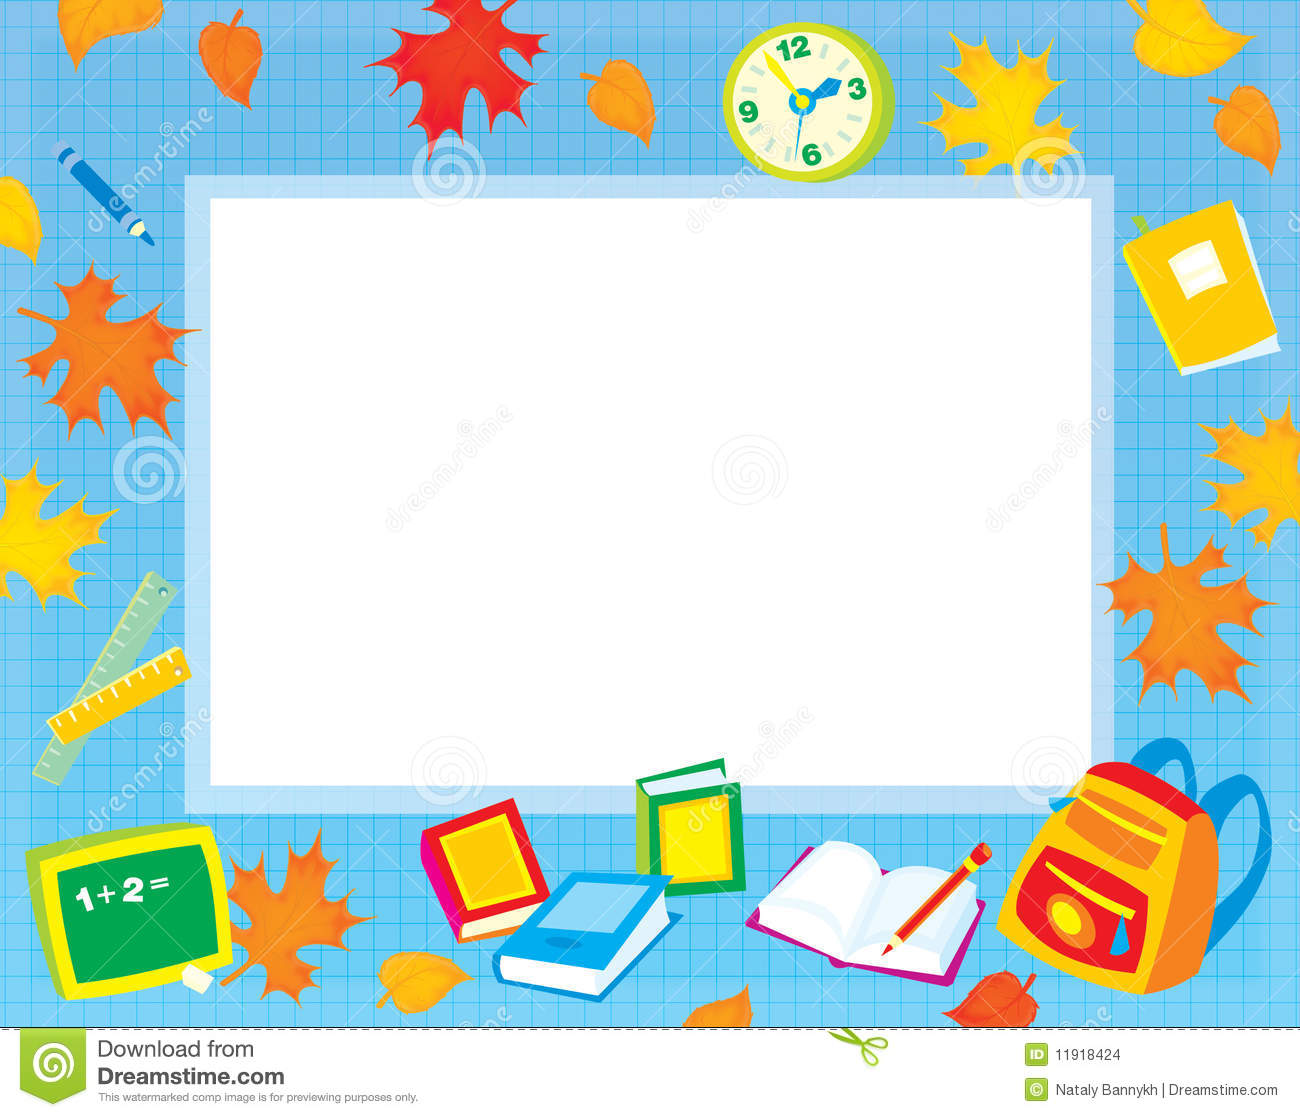 Frame clipart education Clip Educational borders Collection clipart